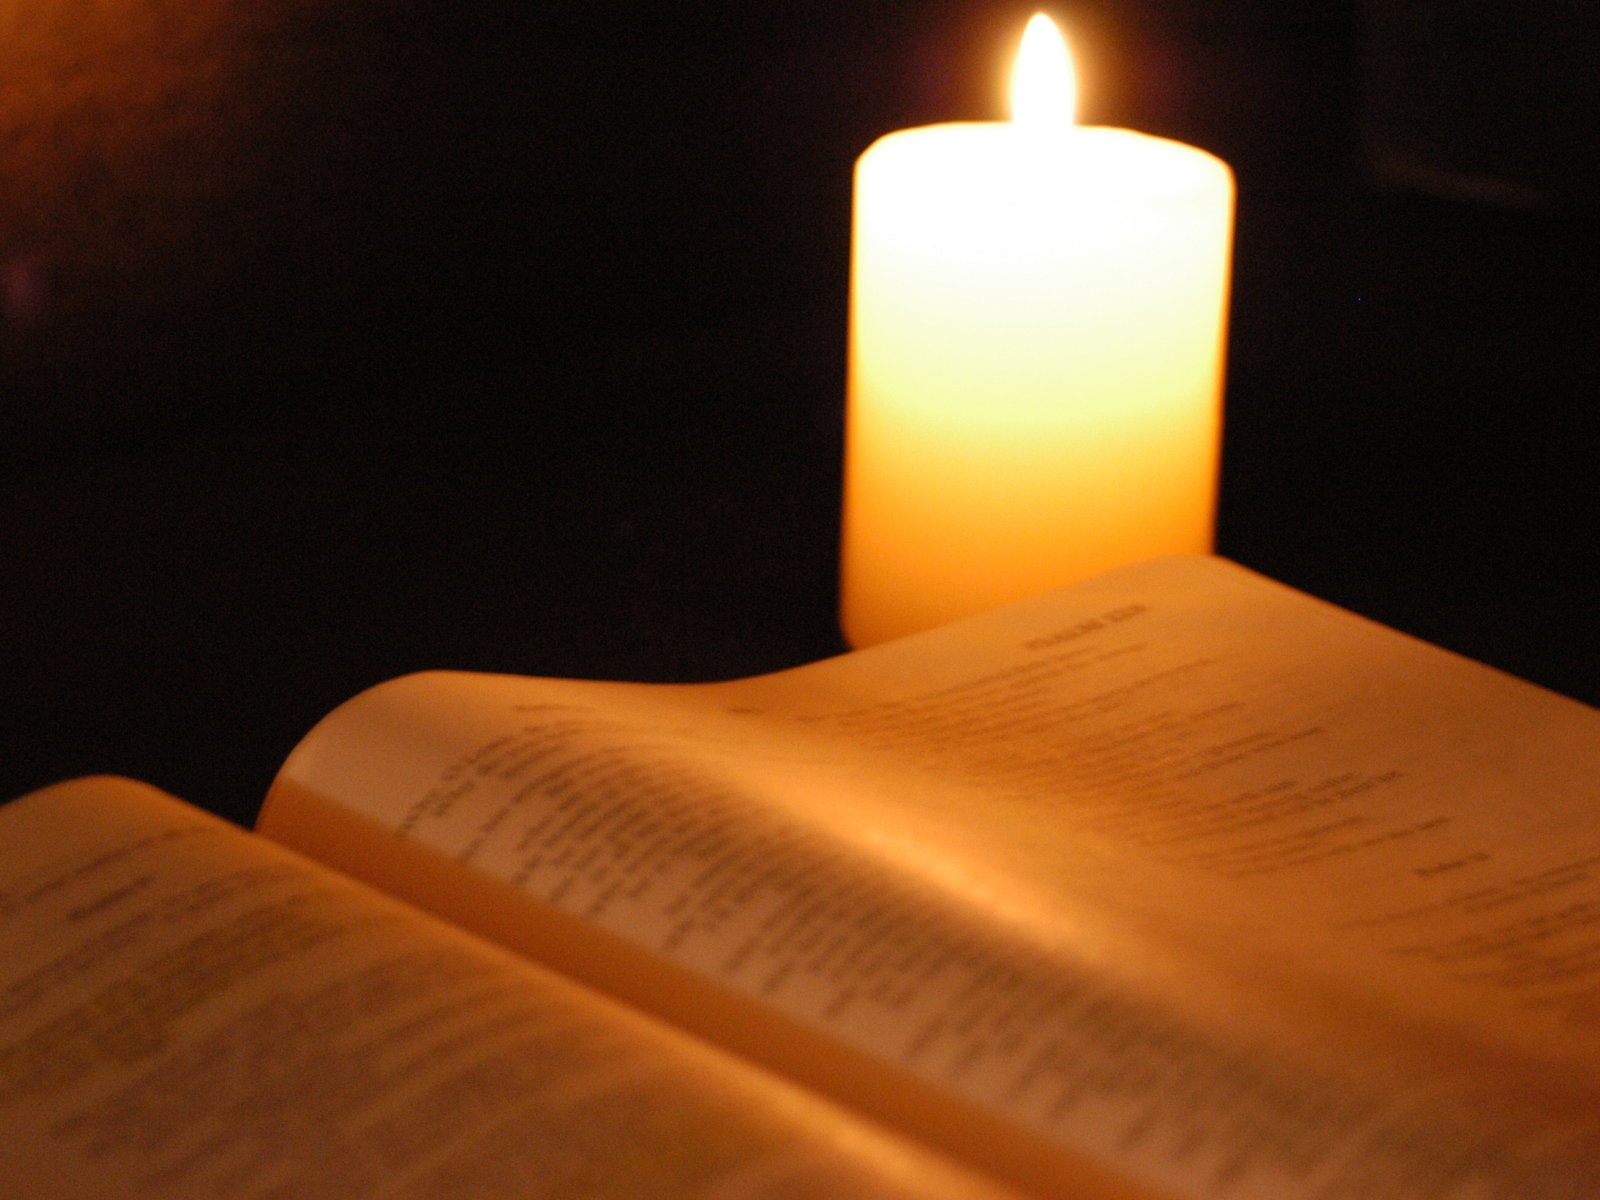 Holy Bible And Candle Wallpaper   Christian Wallpapers and Backgrounds 1600x1200